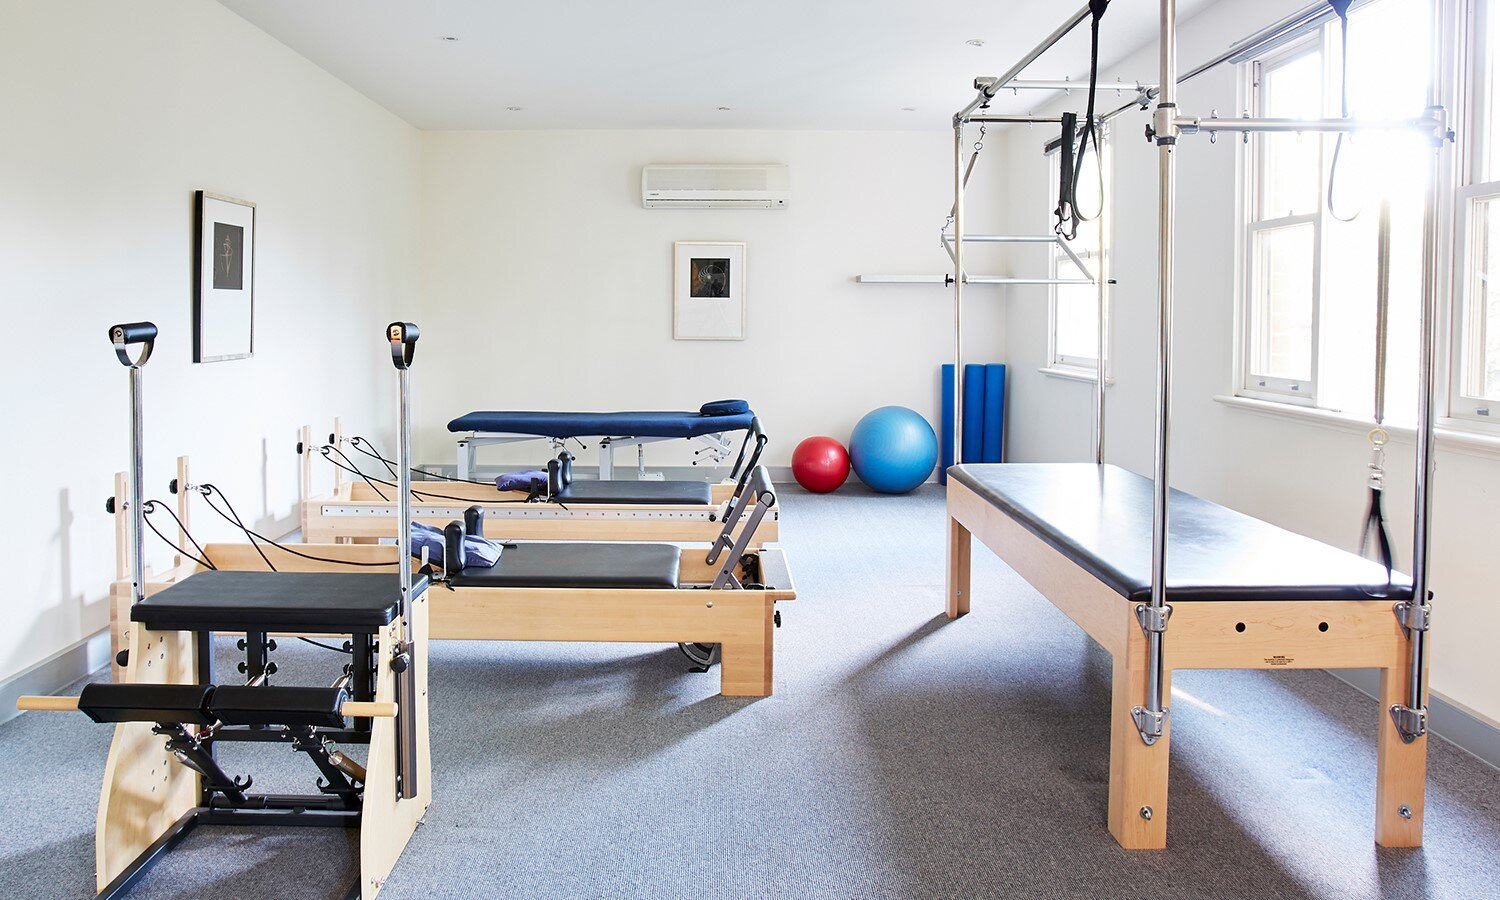 If recovering from injury or surgery your rehabilitation will usually require a structured exercise program. -